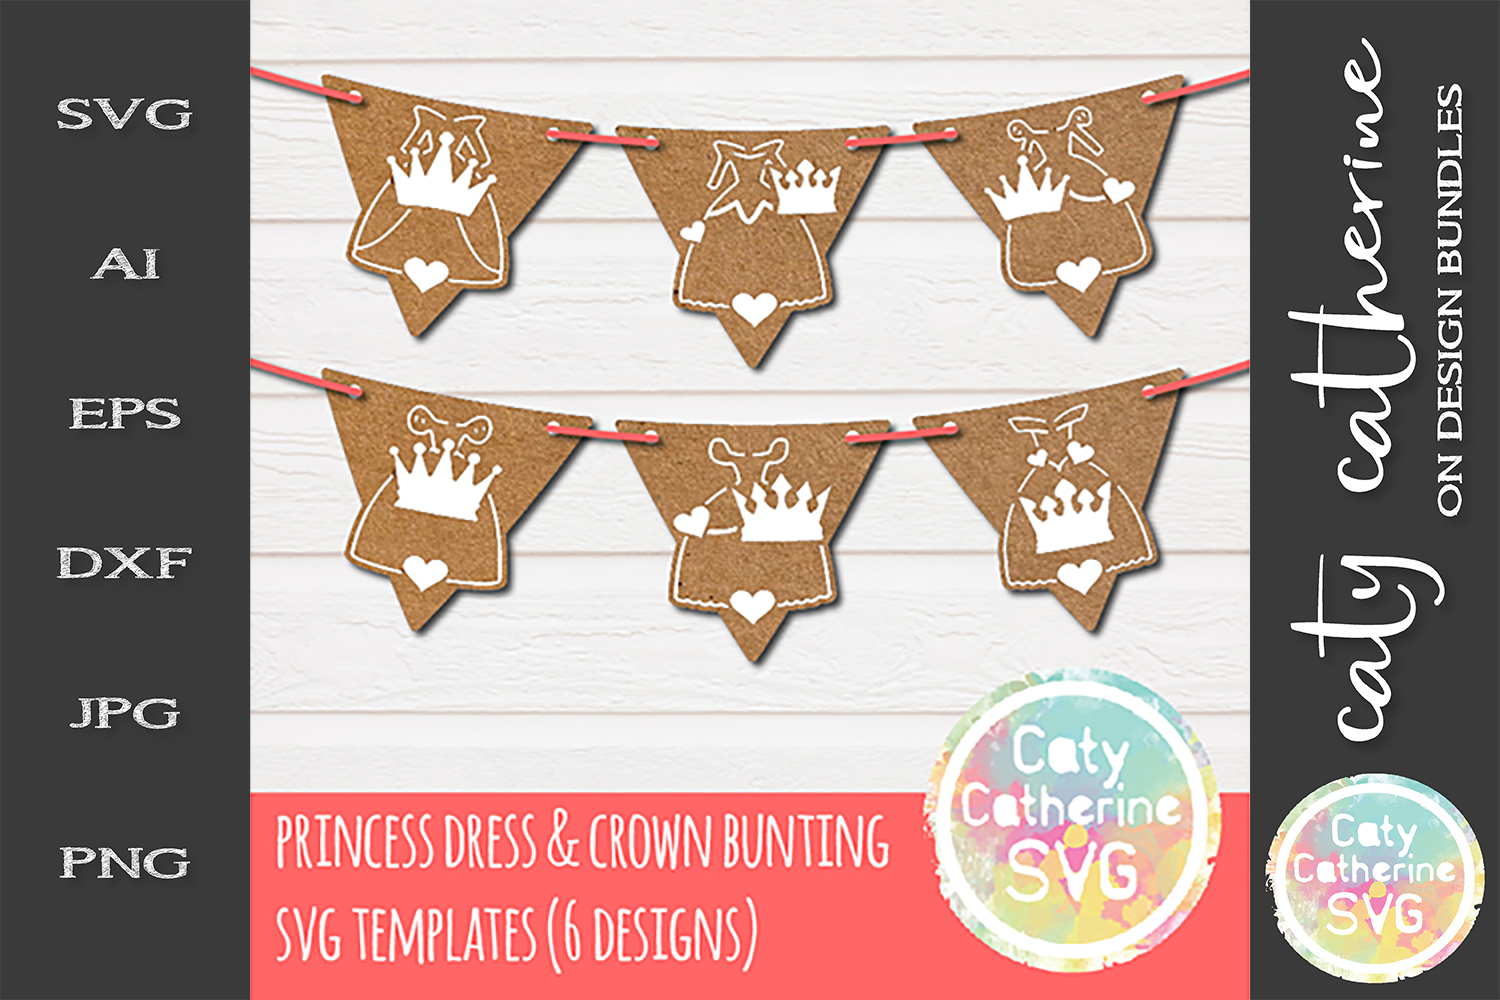 Princess Dress And Crown Birthday Party Bunting SVG Cut File example image 1